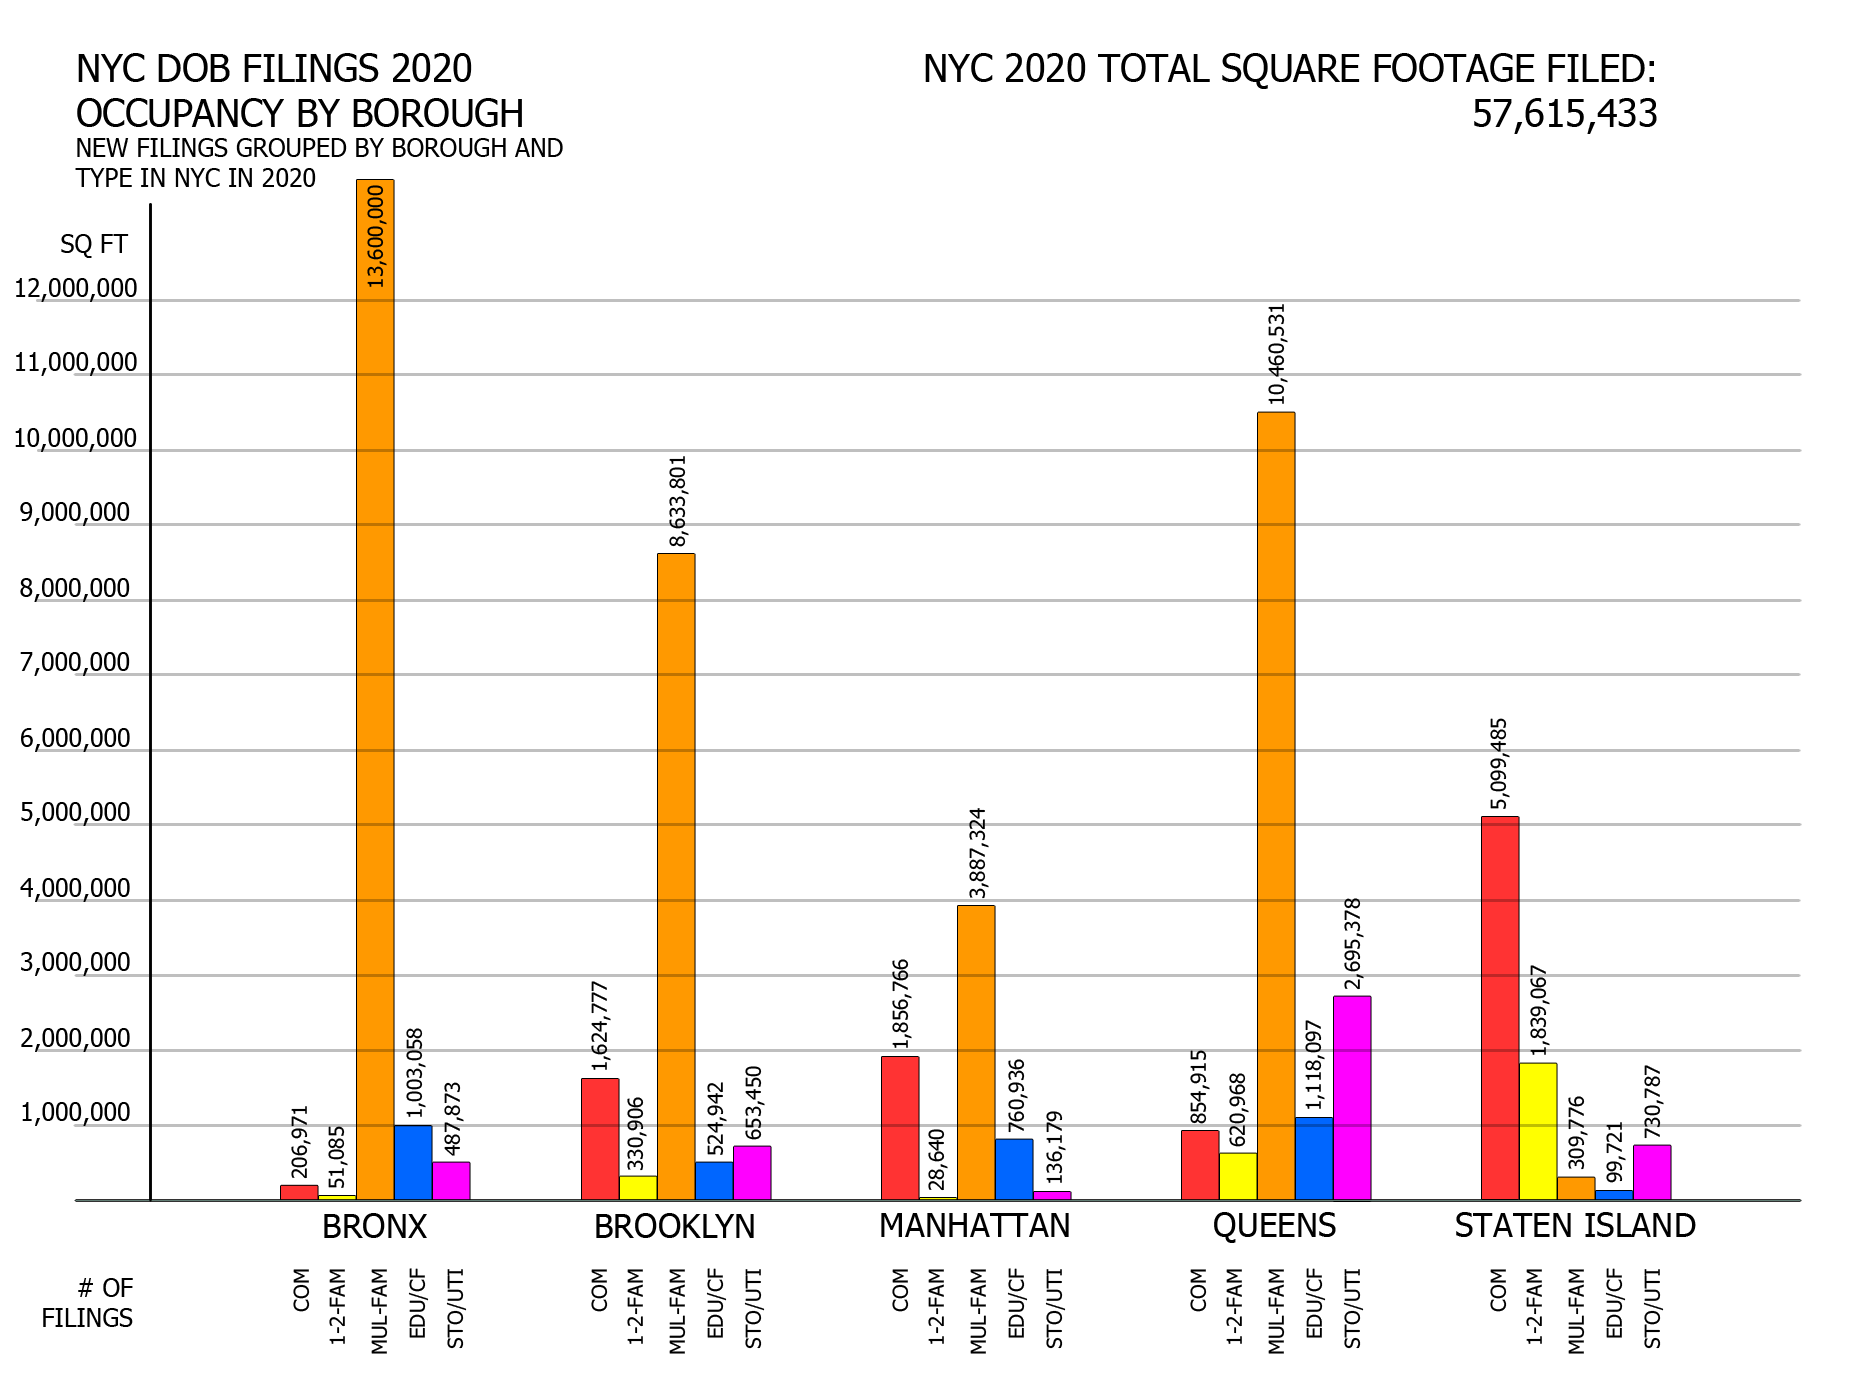 NYC DOB filings in 2020 by borough by floor area per occupancy. Credit: Vitali Ogorodnikov